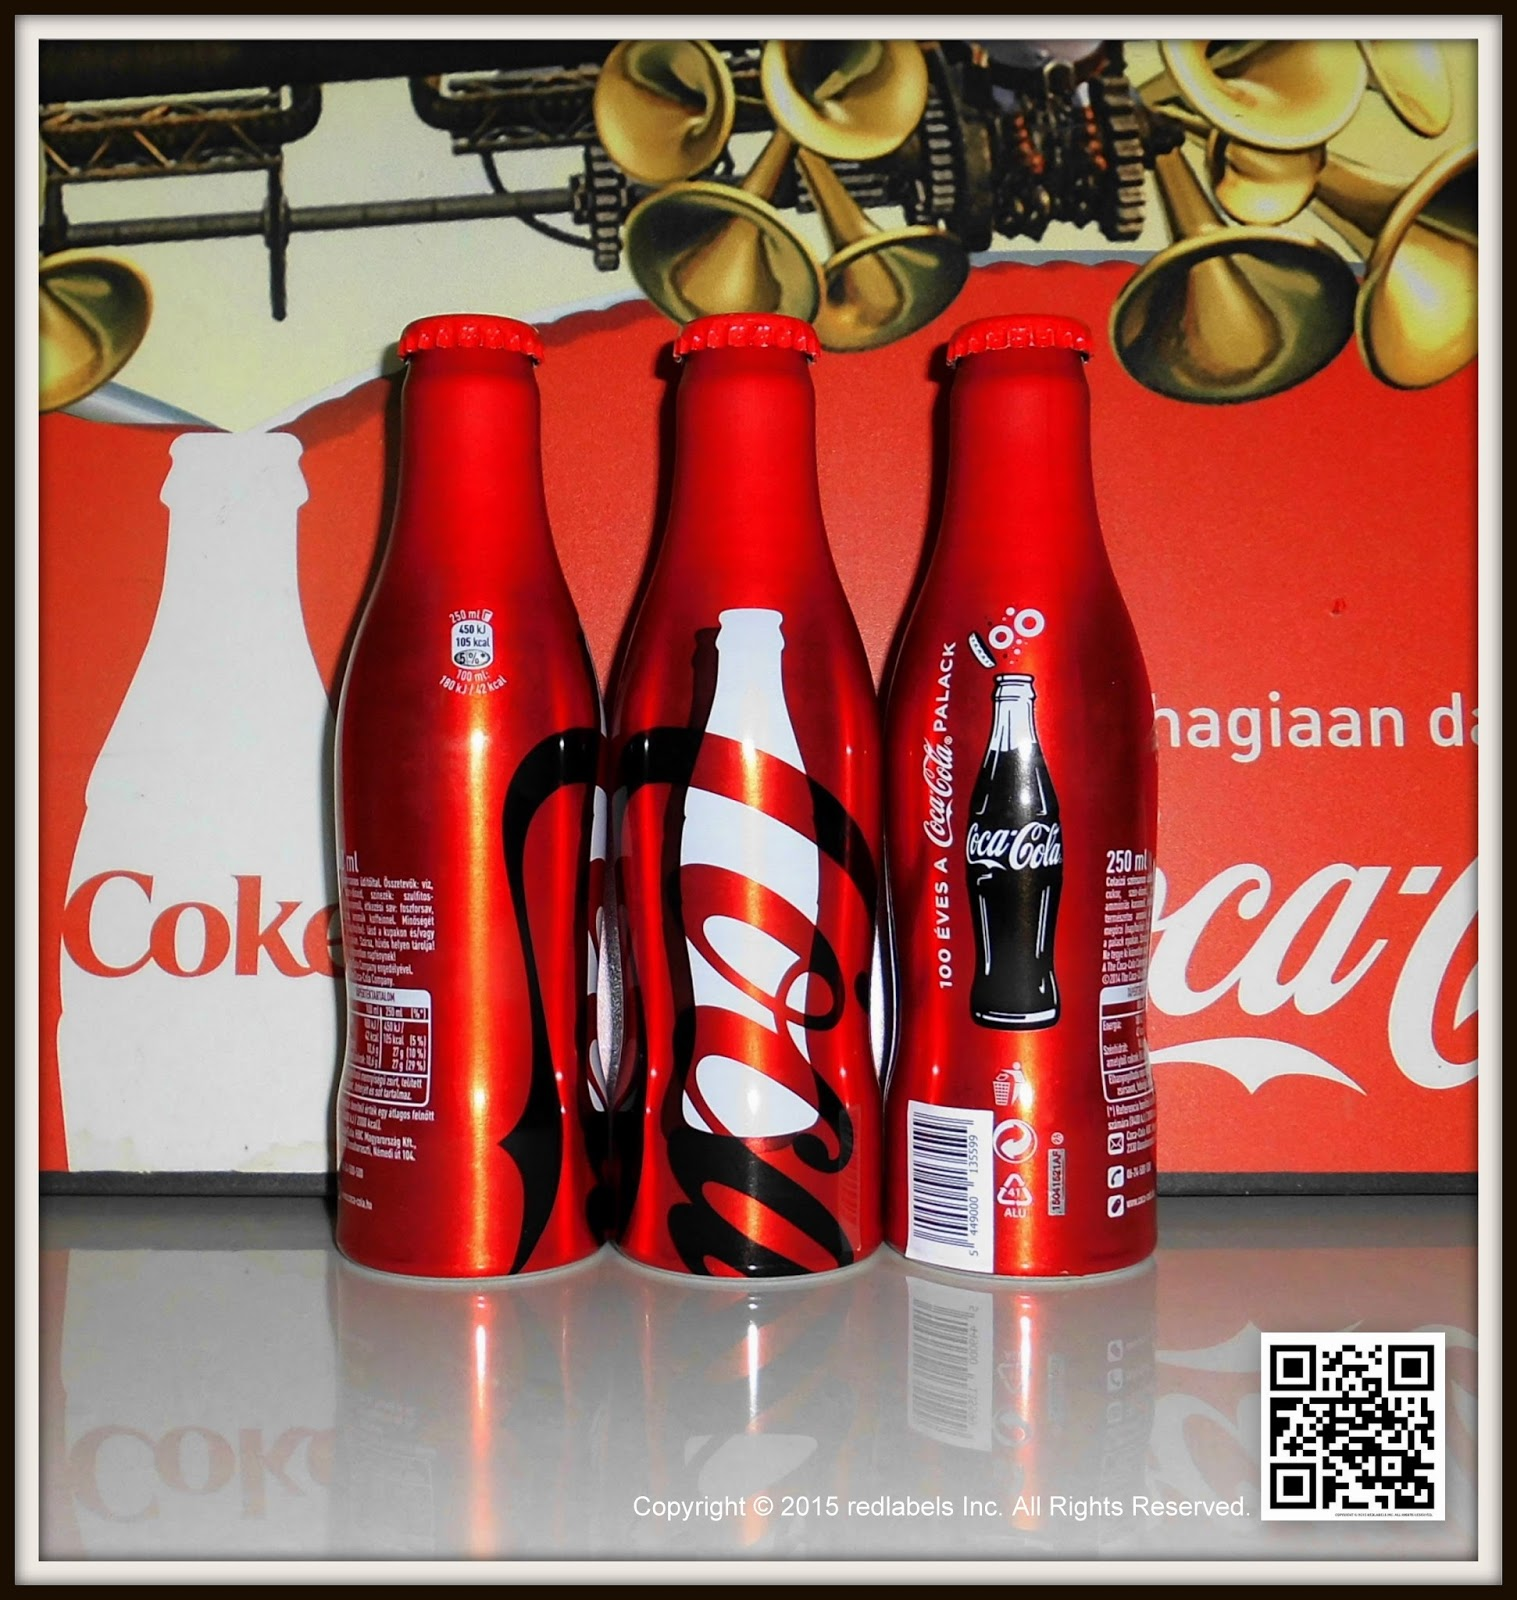 aluminum bottle collector club coca cola mashupcoke project aluminum bottle hungary 2015. Black Bedroom Furniture Sets. Home Design Ideas